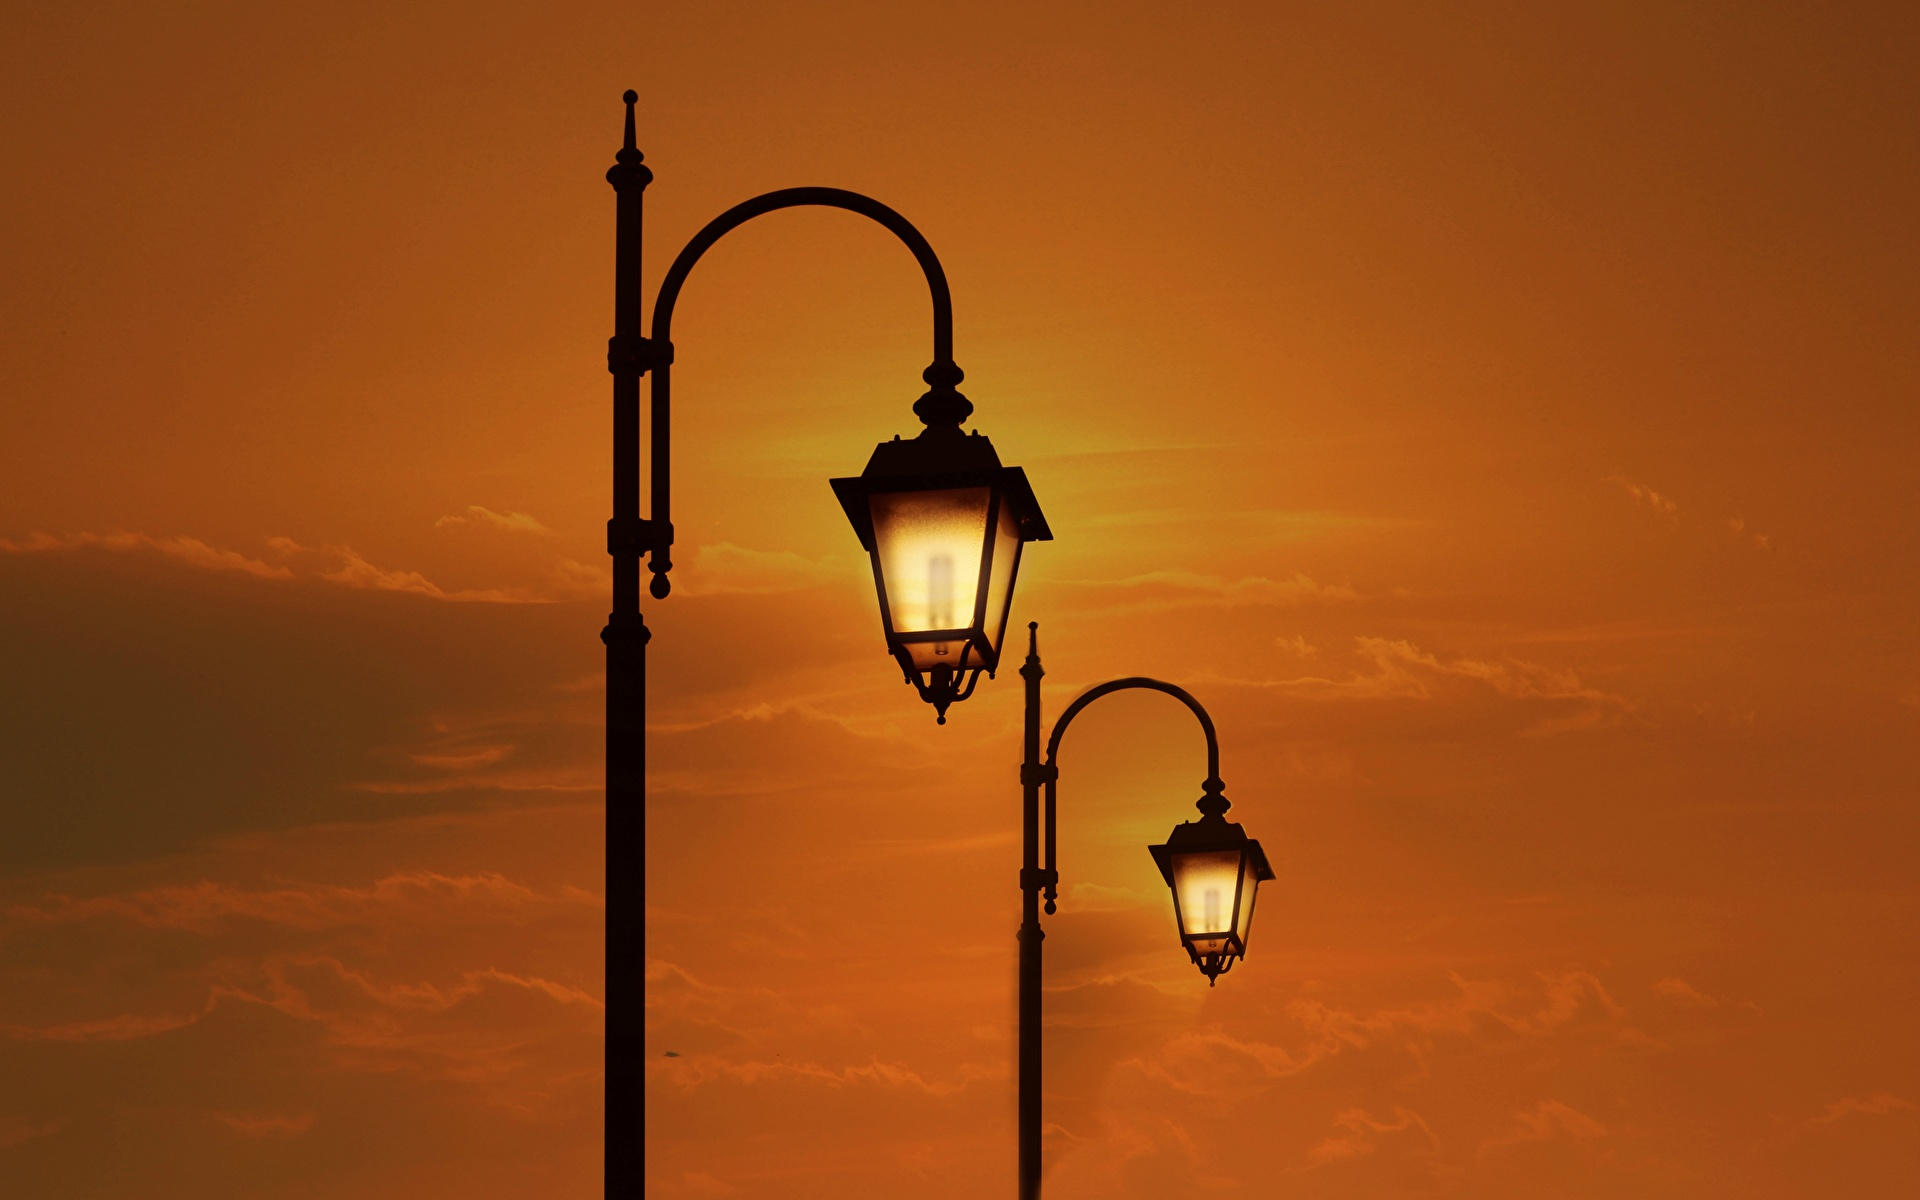 Photos Two Sunrises and sunsets Street lights 1920x1200 2 sunrise and sunset